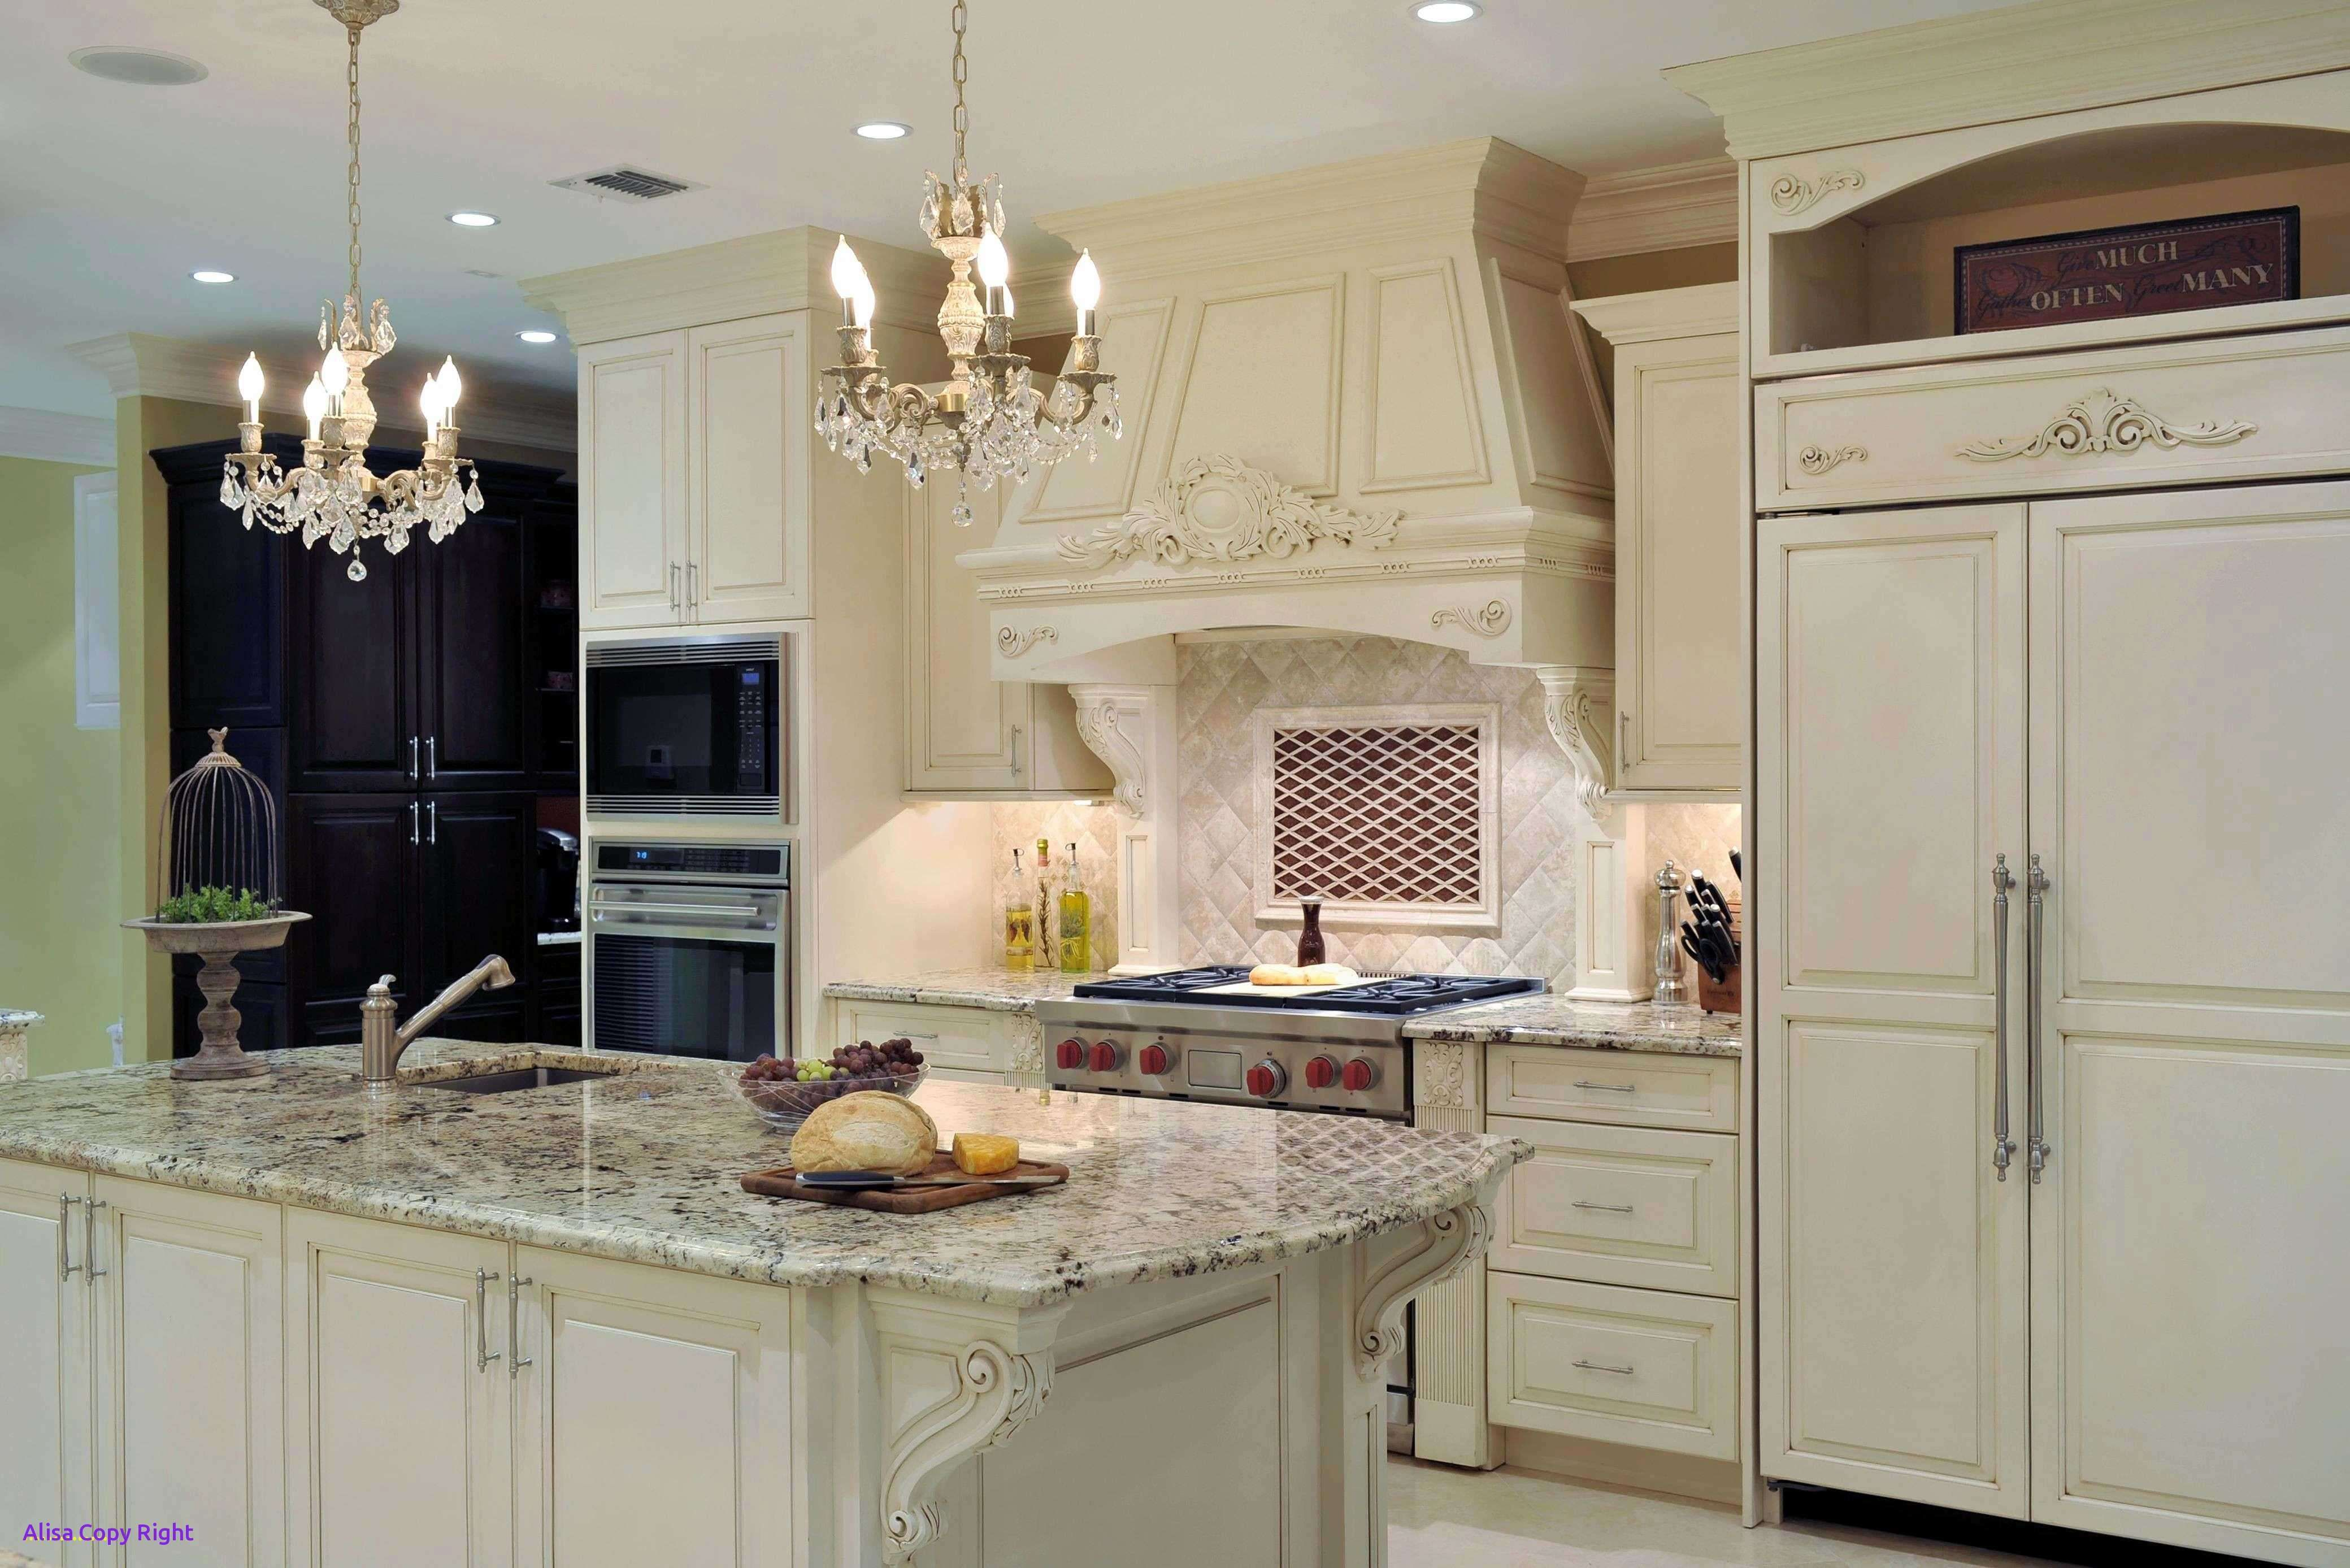 How To Install Kitchen Cabinet Handles Homedecoration Homedecorations Homedecorati Country Kitchen Backsplash Kitchen Design Small Kitchen Cabinet Colors